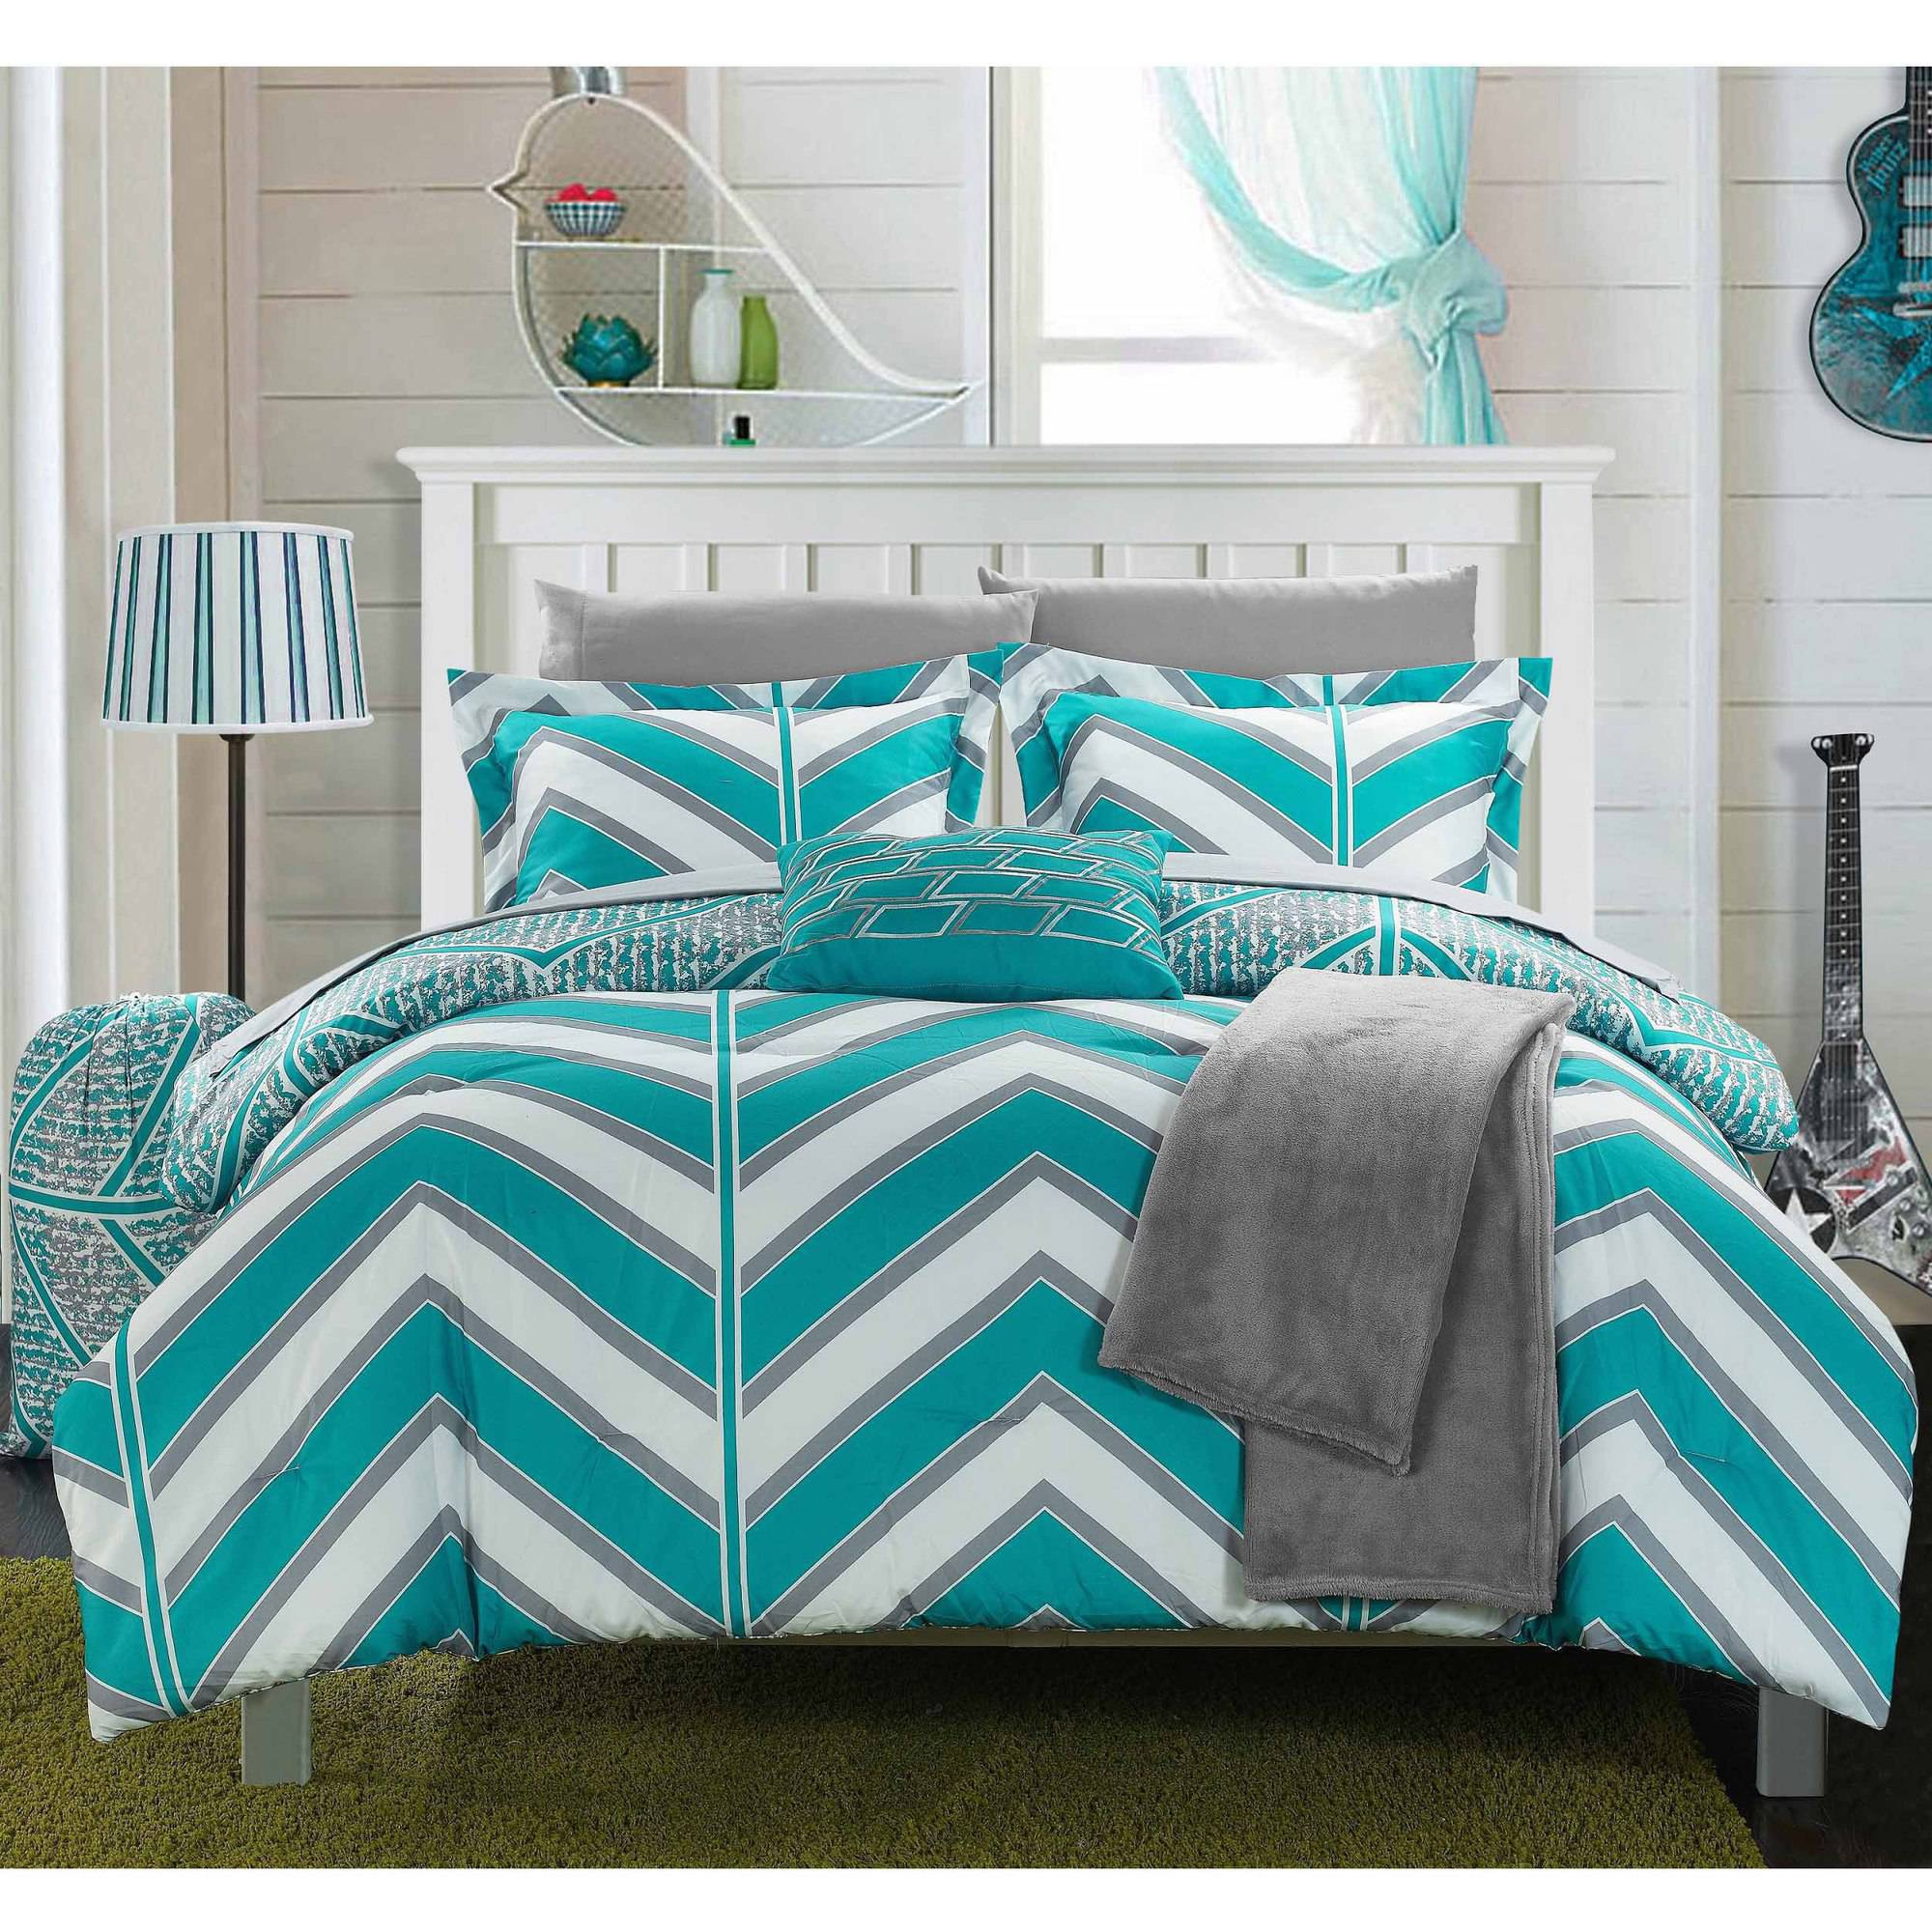 Chic Home 10-Piece Amaretto Chevron and Geometric Printed Reversible Comforter Set Includes Sheets, Duffle Hamper and Fleece Throw